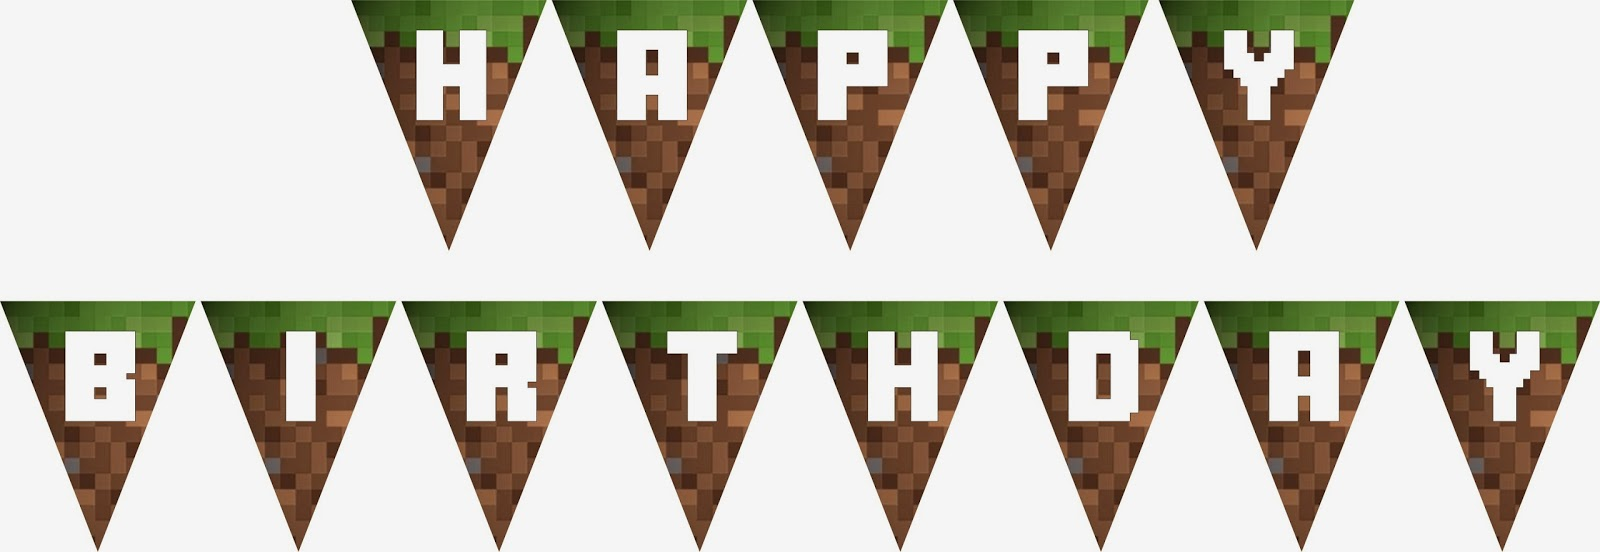 image regarding Minecraft Birthday Banner Free Printable named 2 Magical Mothers: Minecraft Social gathering Printables Free of charge